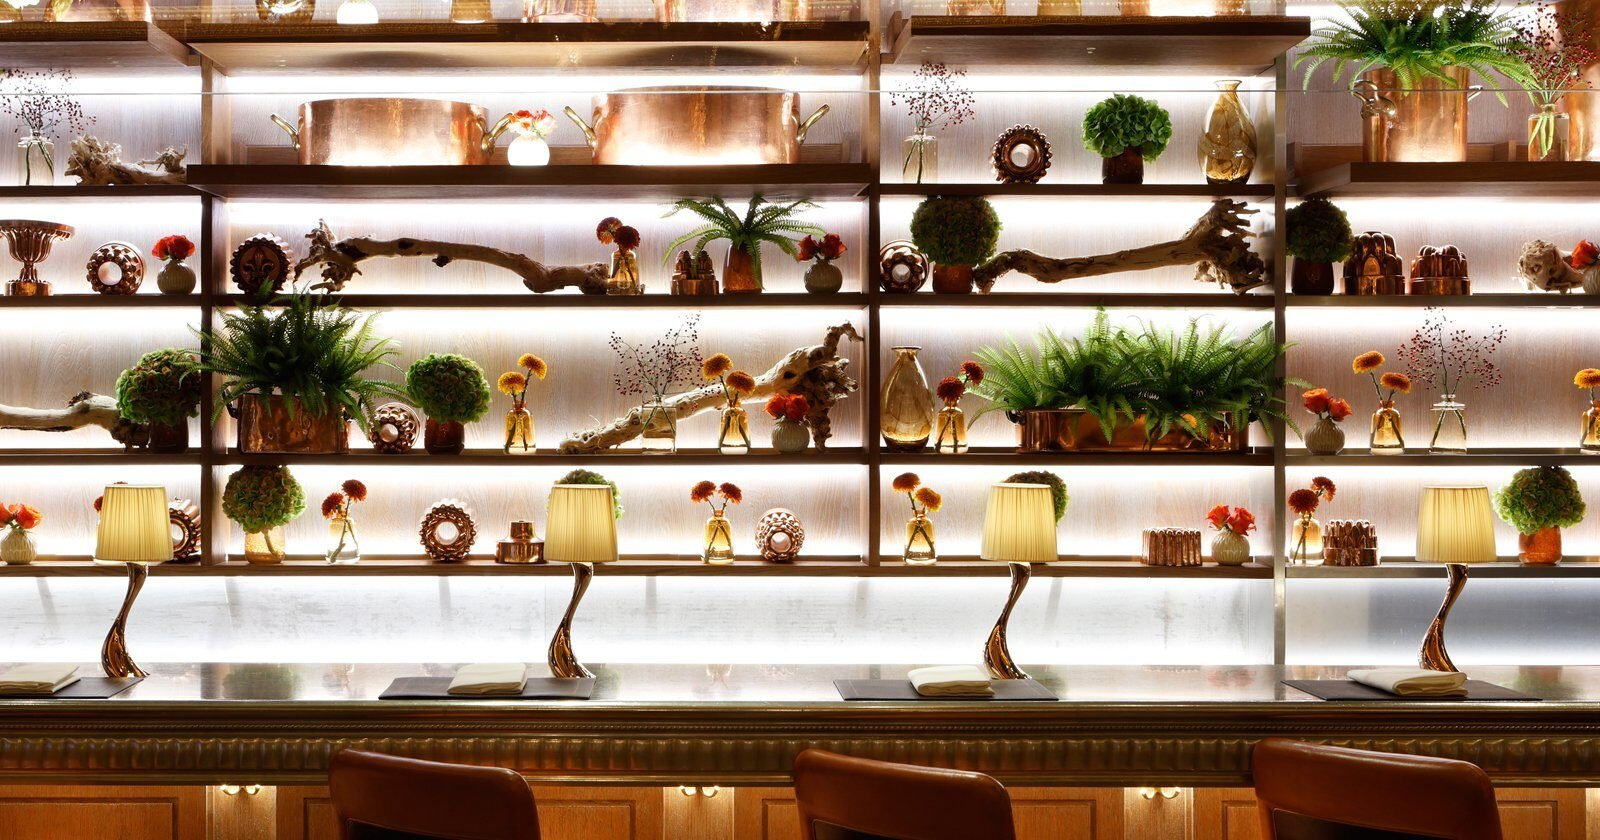 Behind the bar at The Grill restaurant at The Dorchester